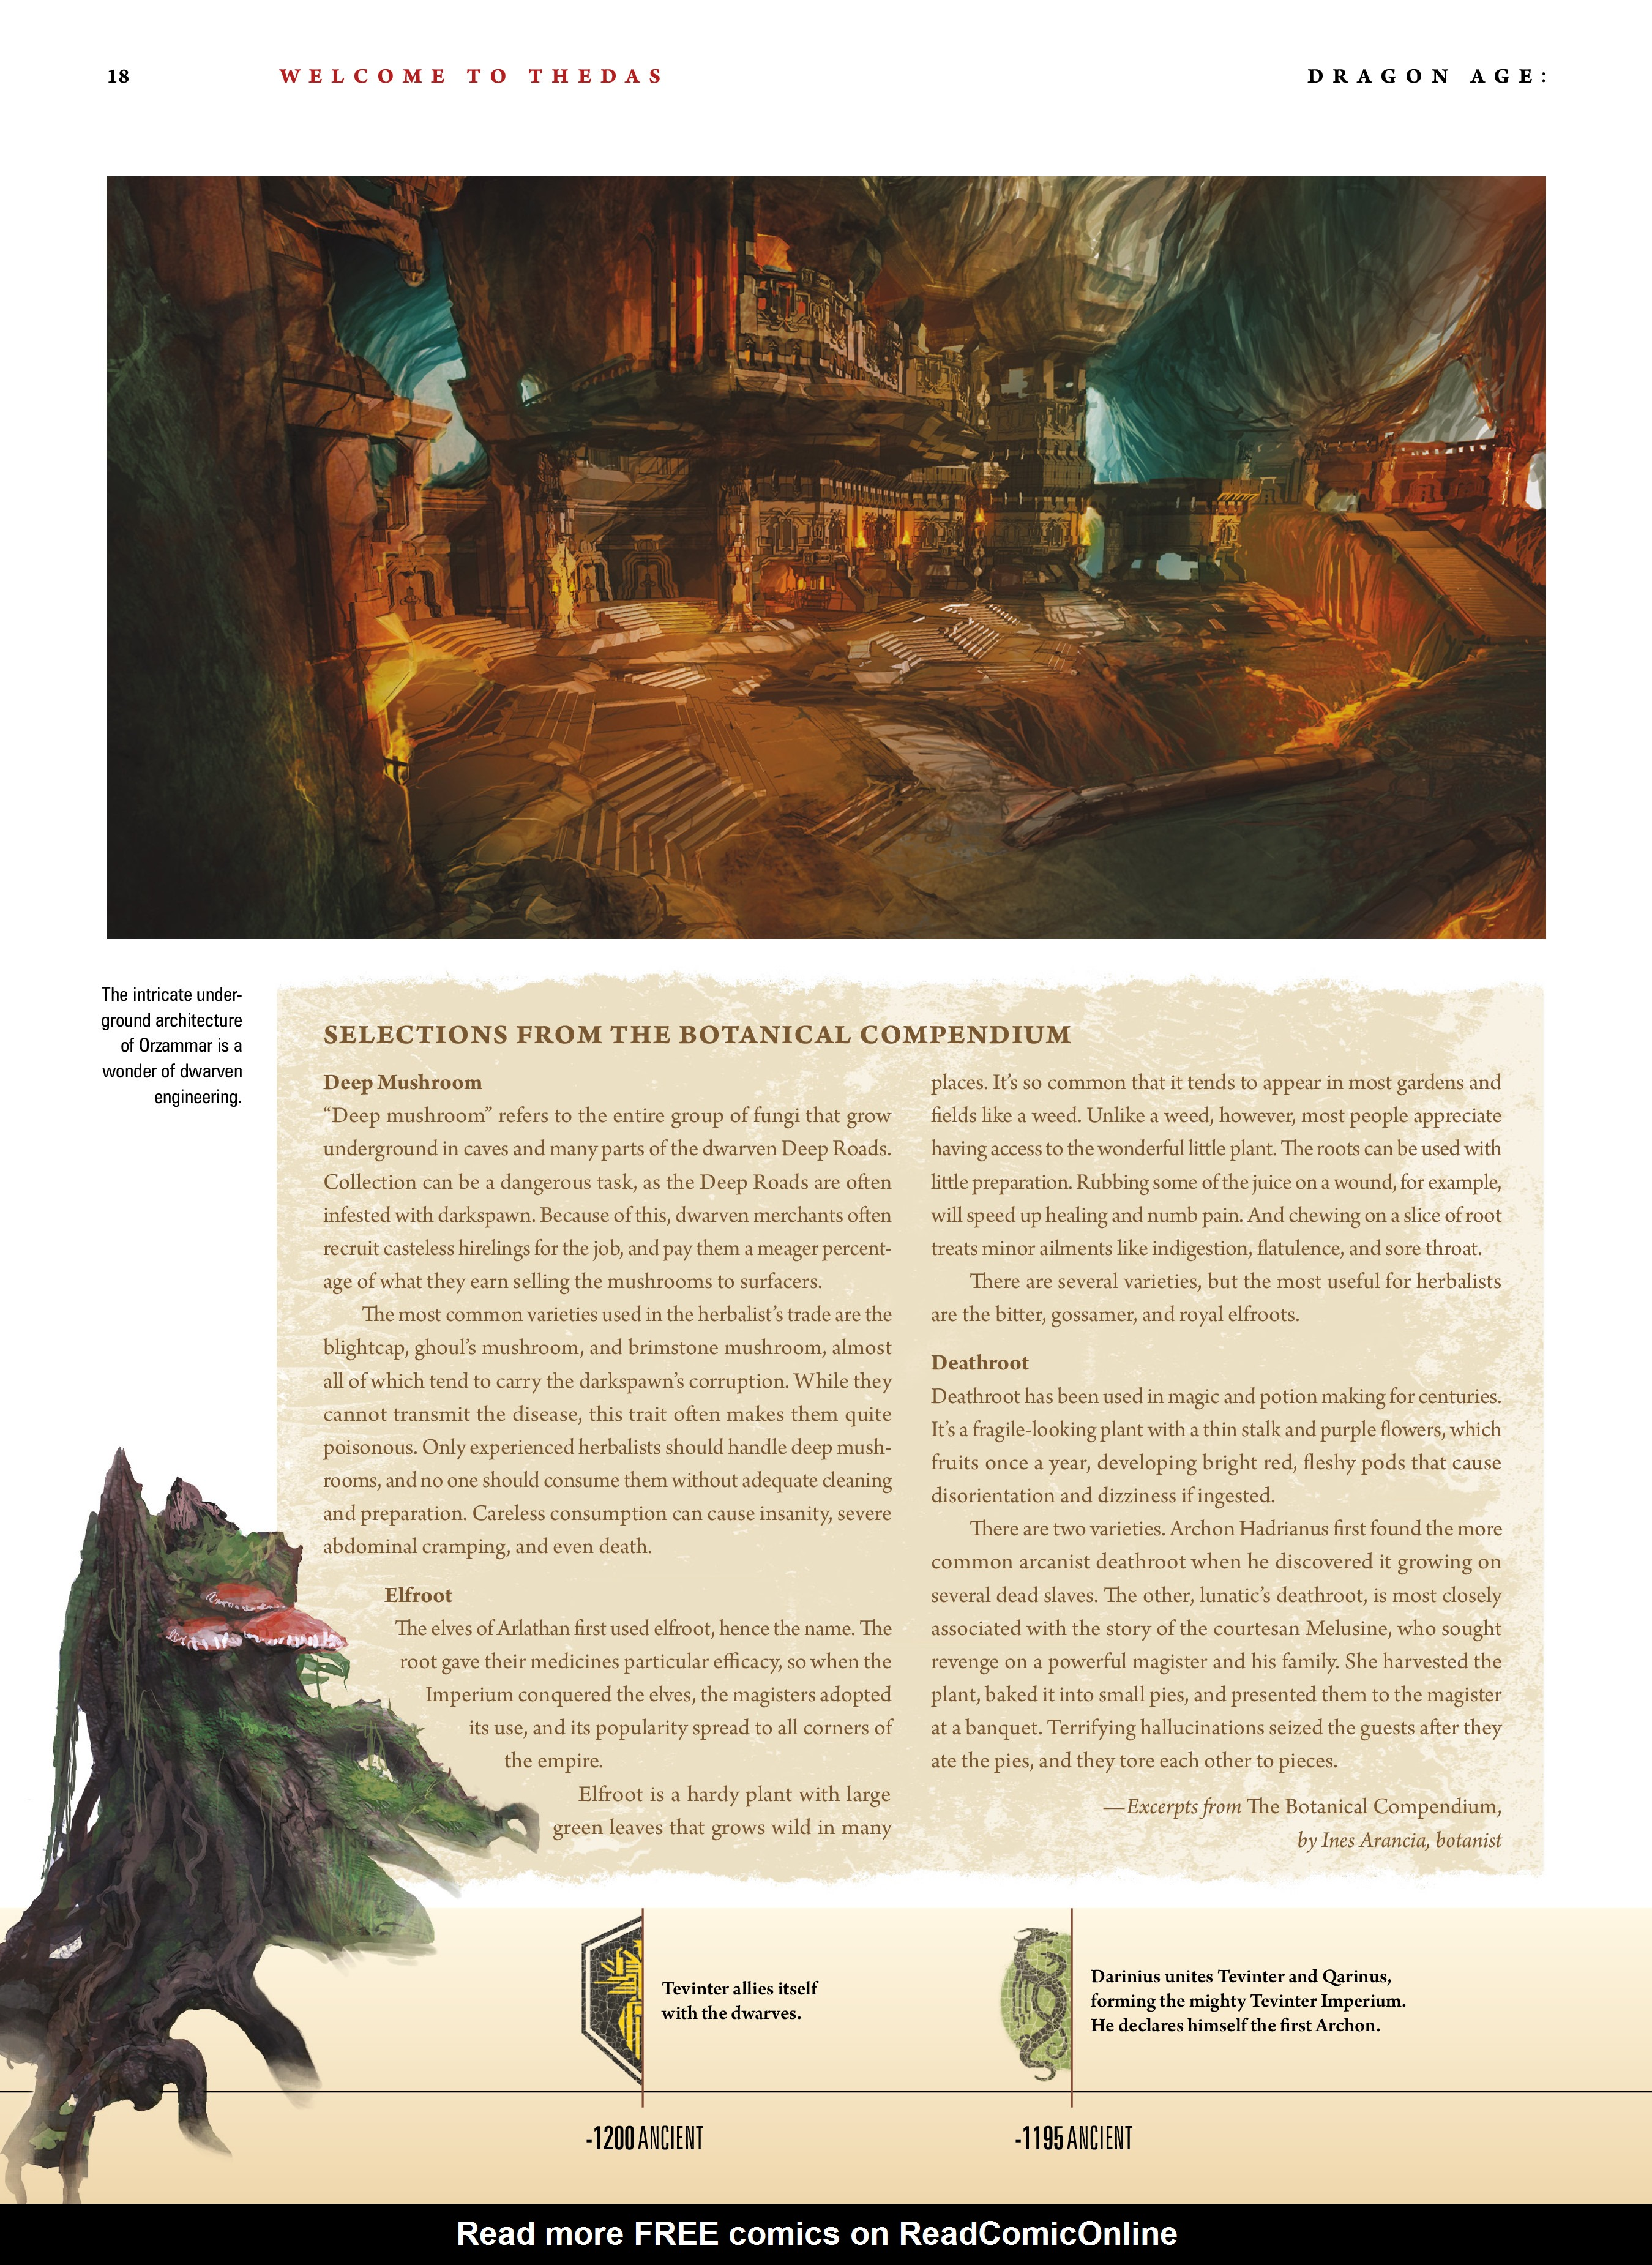 Read online Dragon Age: The World of Thedas comic -  Issue # TPB 1 - 14